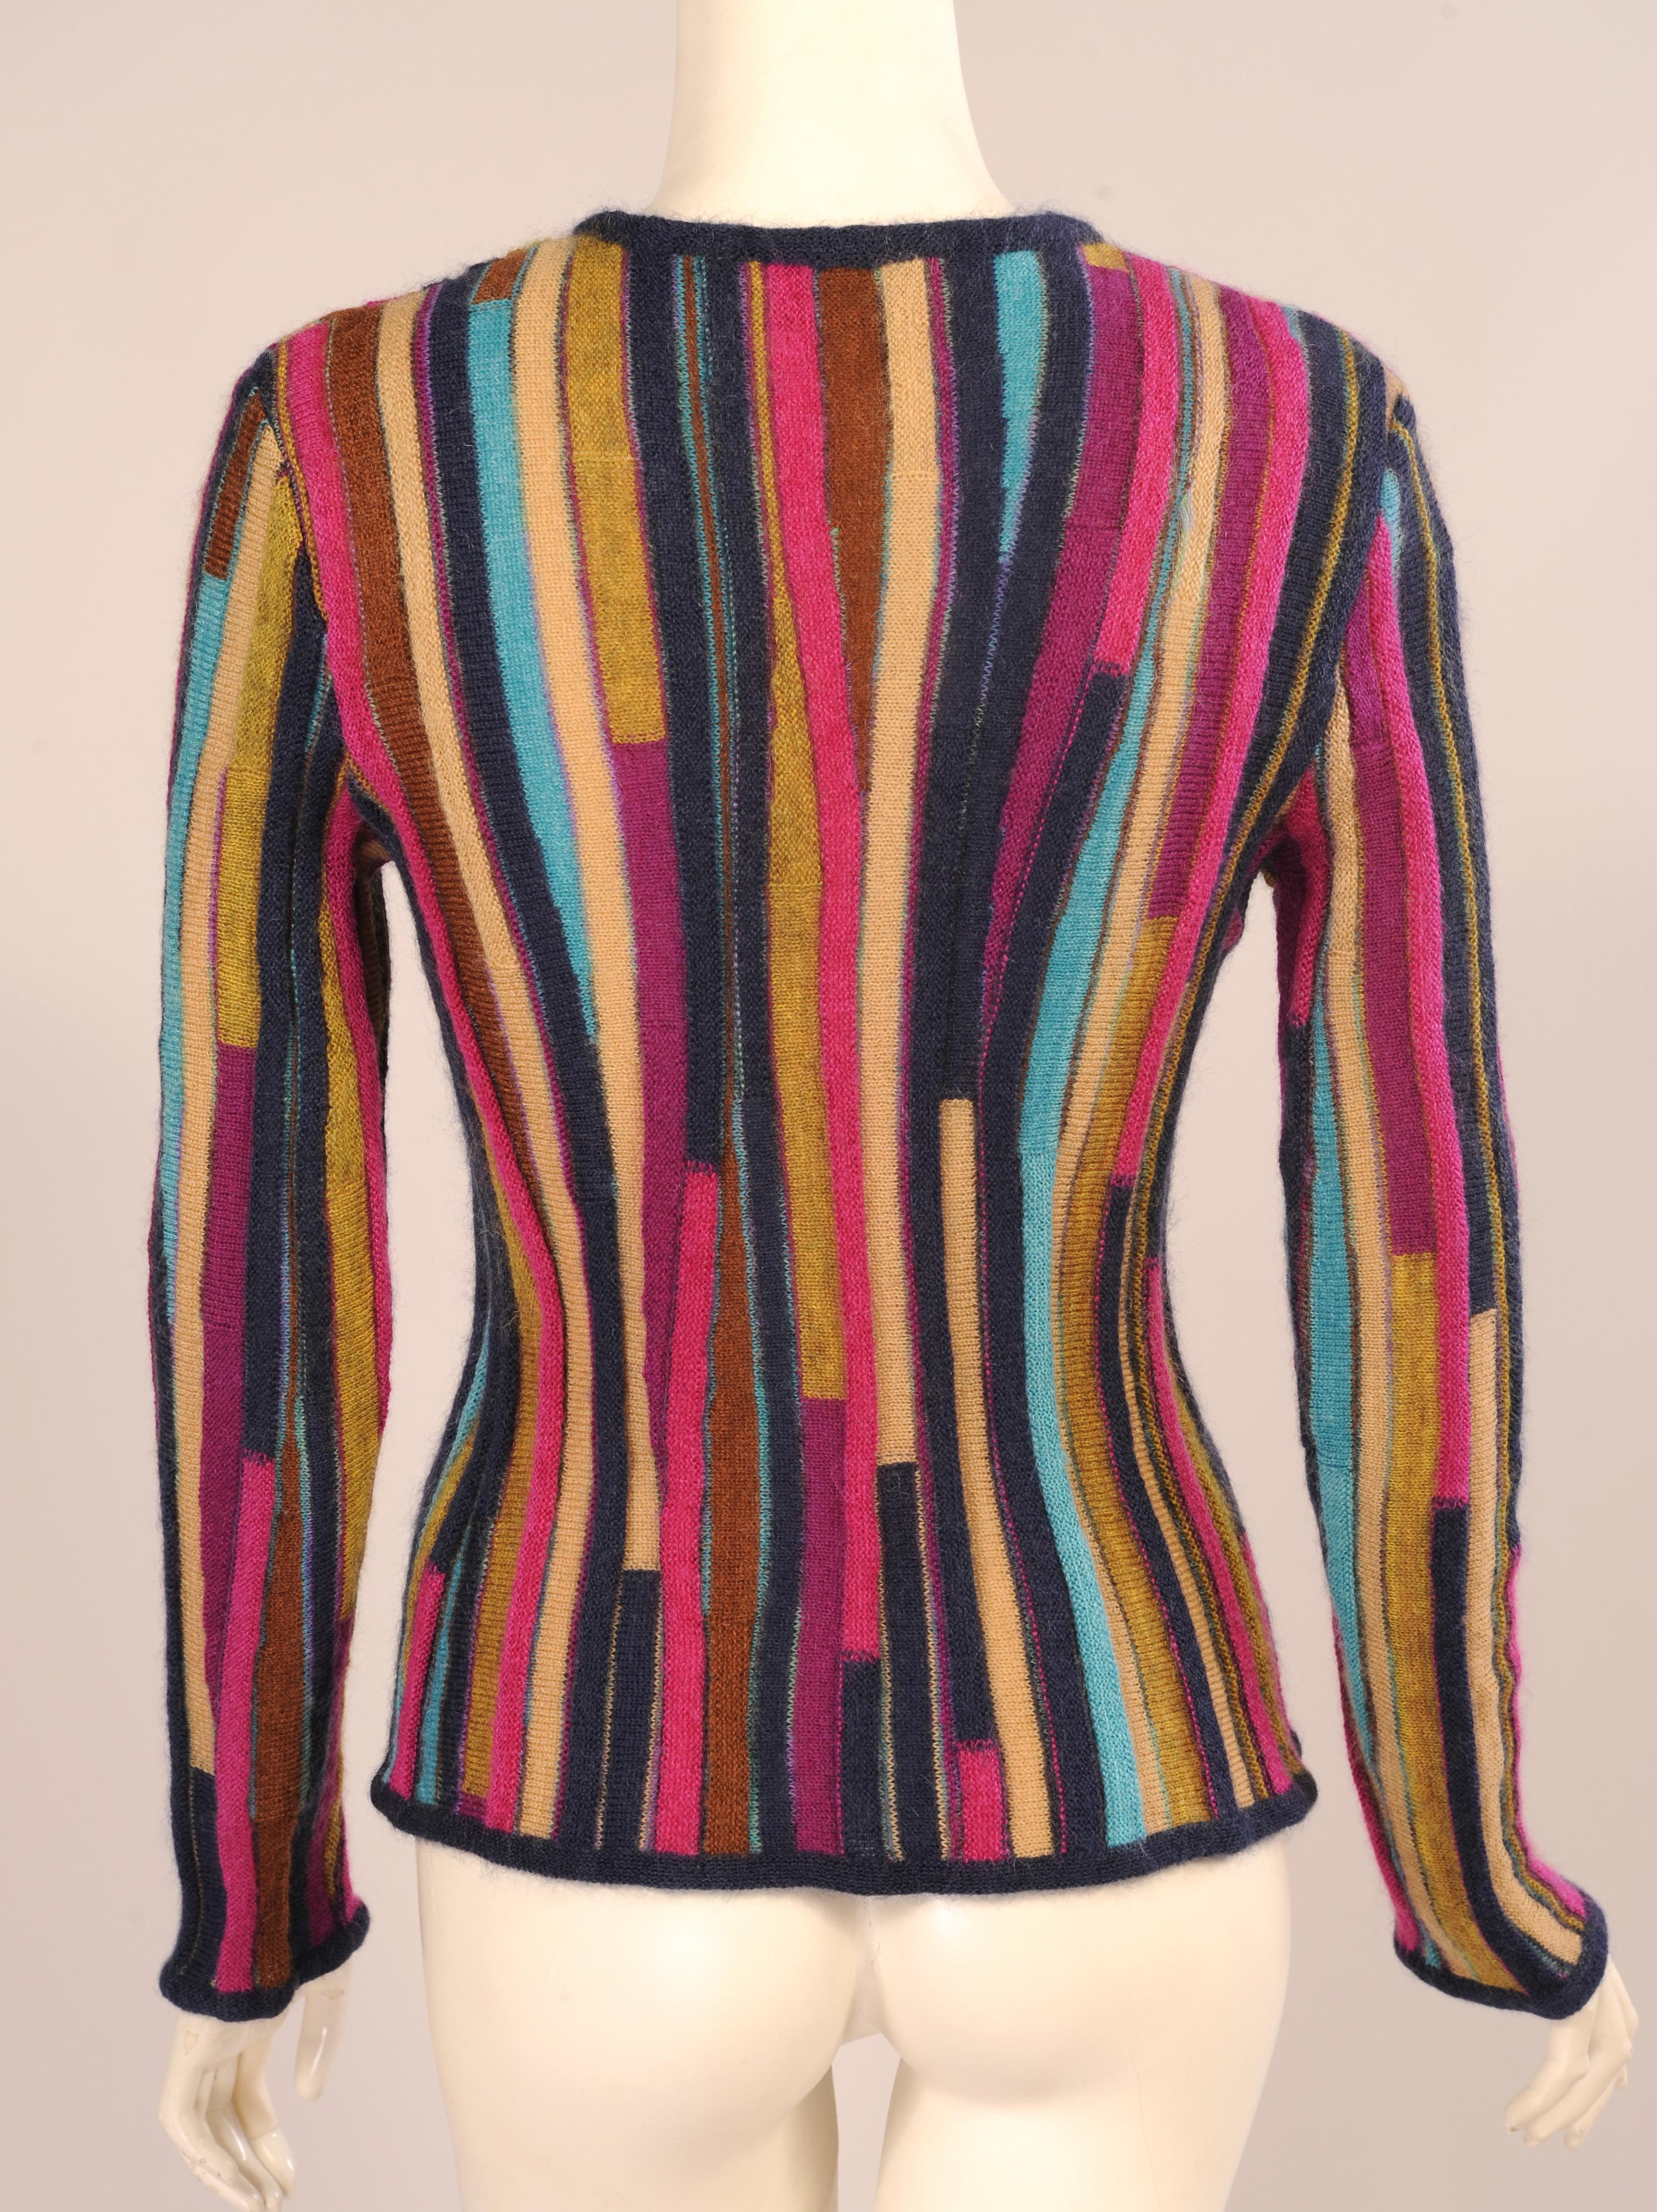 52c03f2d31f70 Missoni Colorful Striped Pullover Sweater Mohair and Wool For Sale at  1stdibs